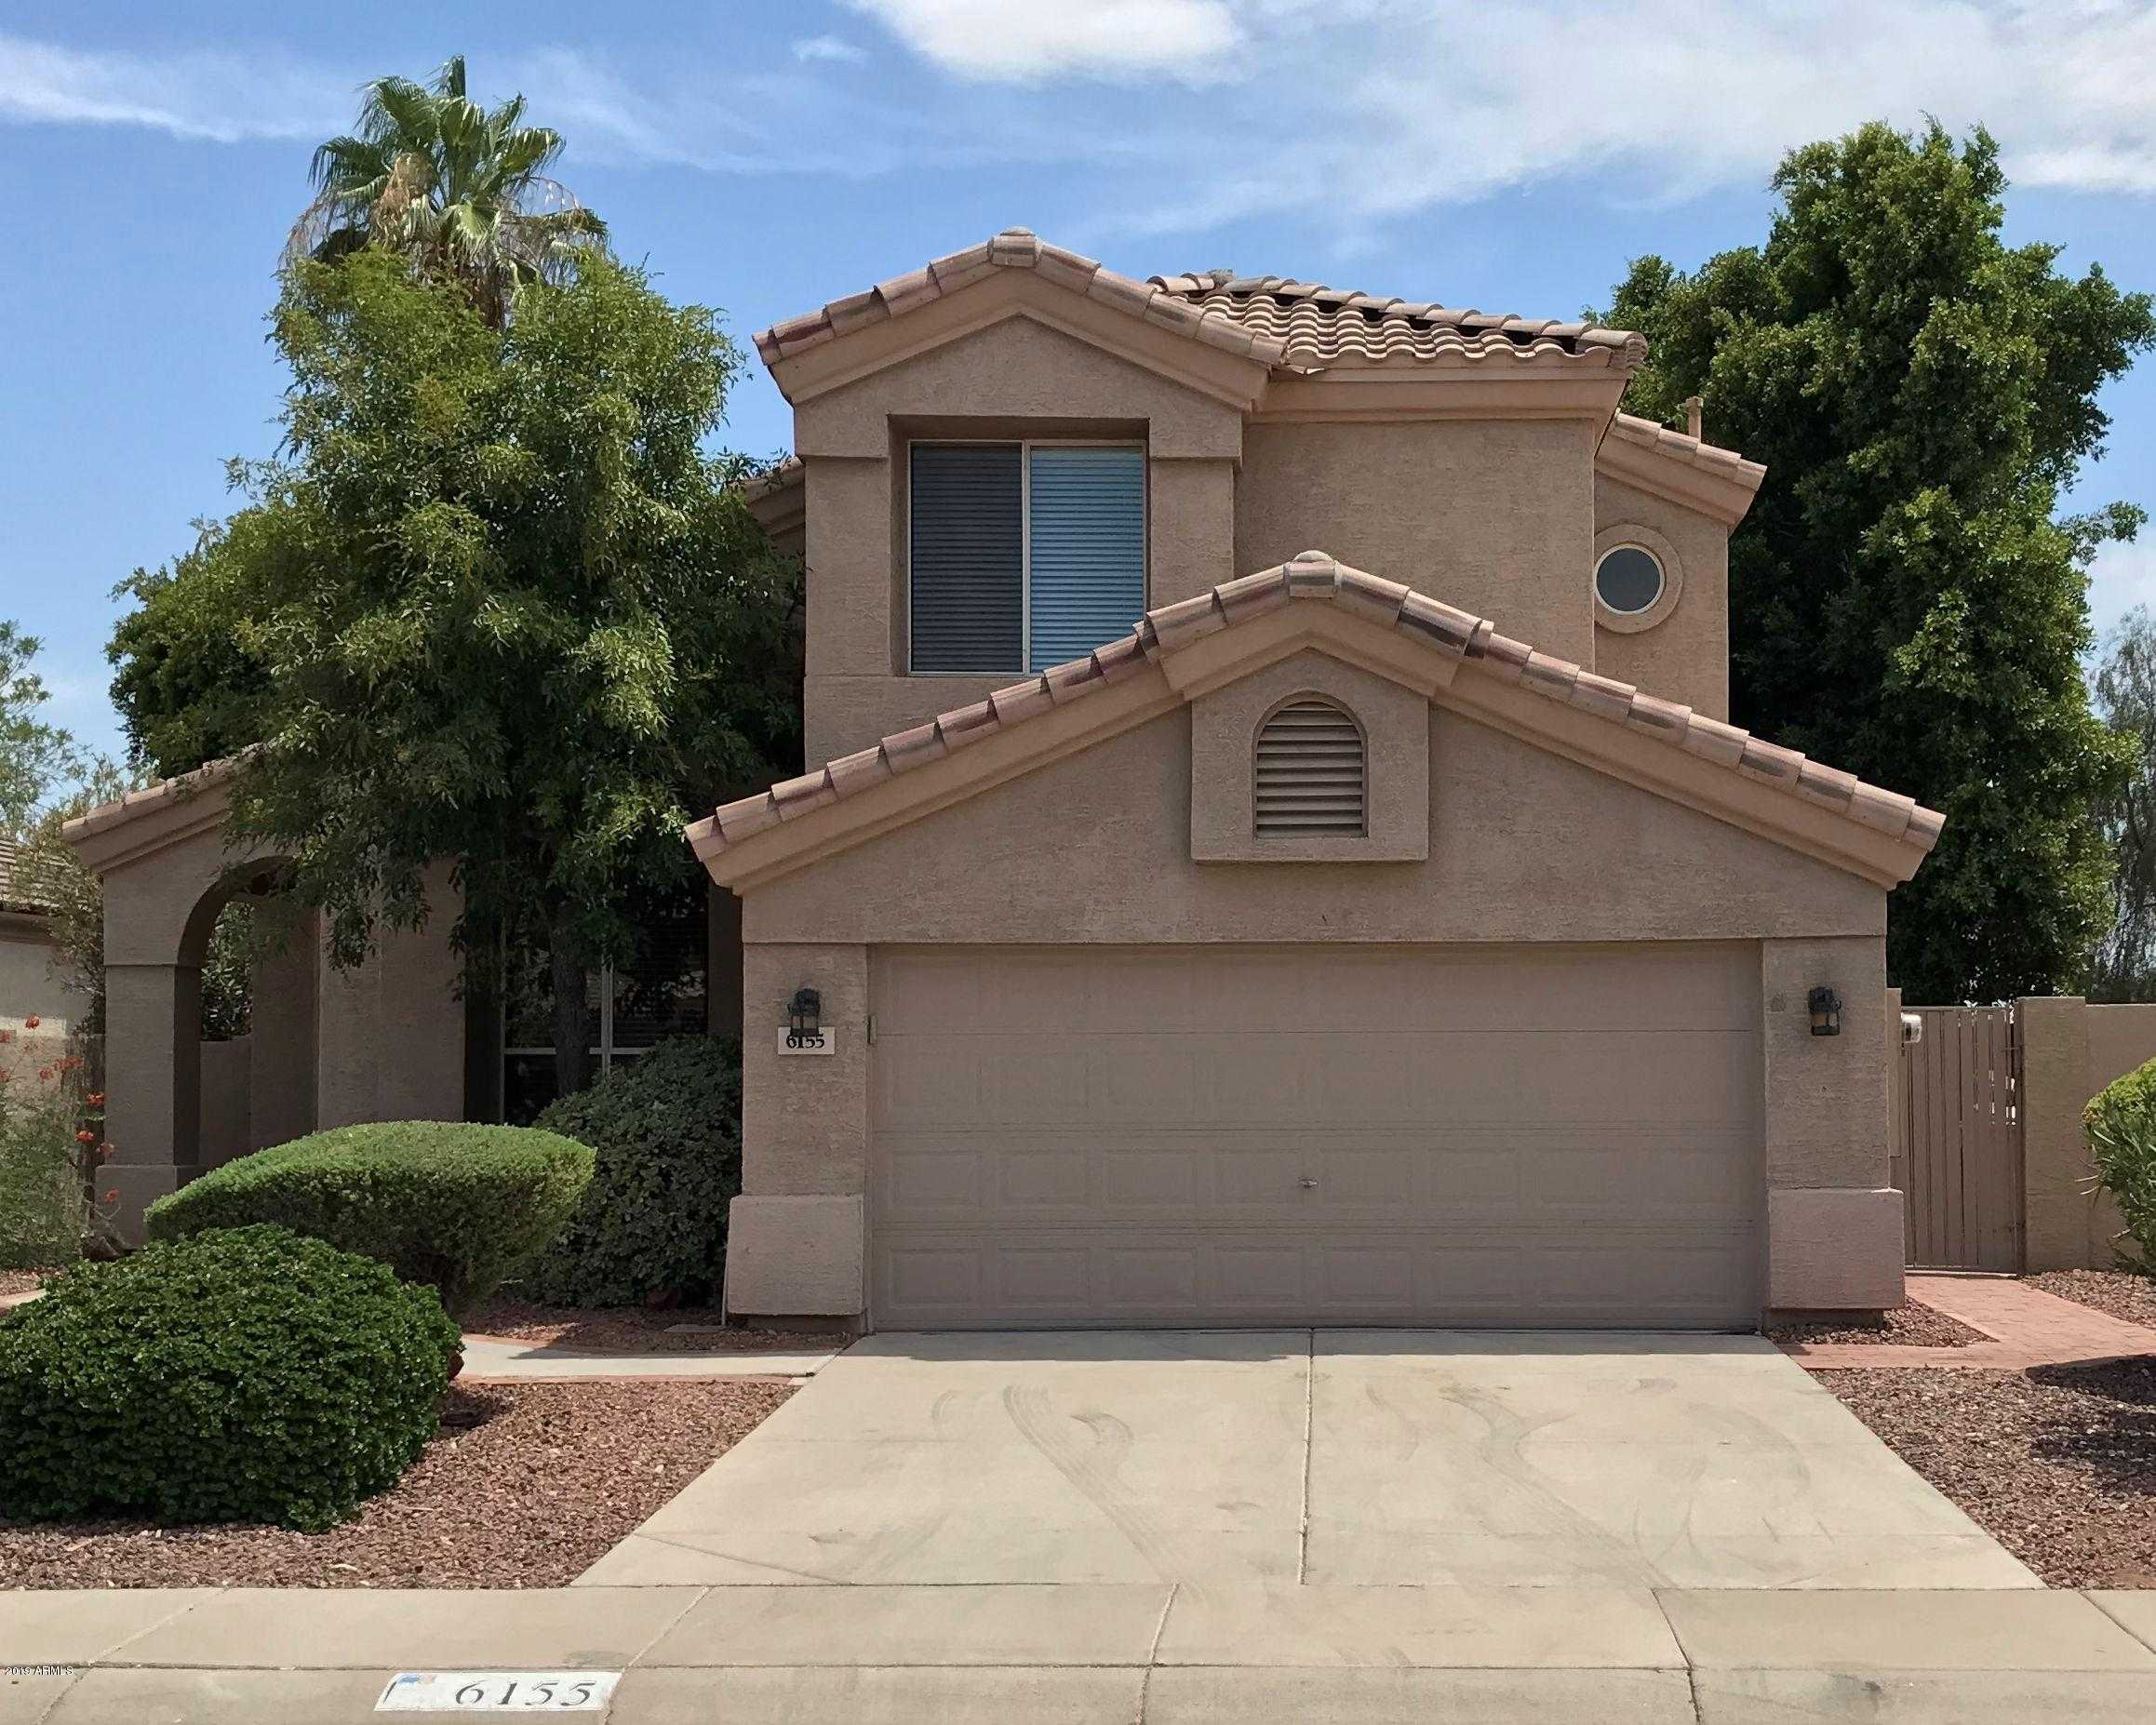 $359,900 - 3Br/3Ba - Home for Sale in Tuscany Point, Glendale